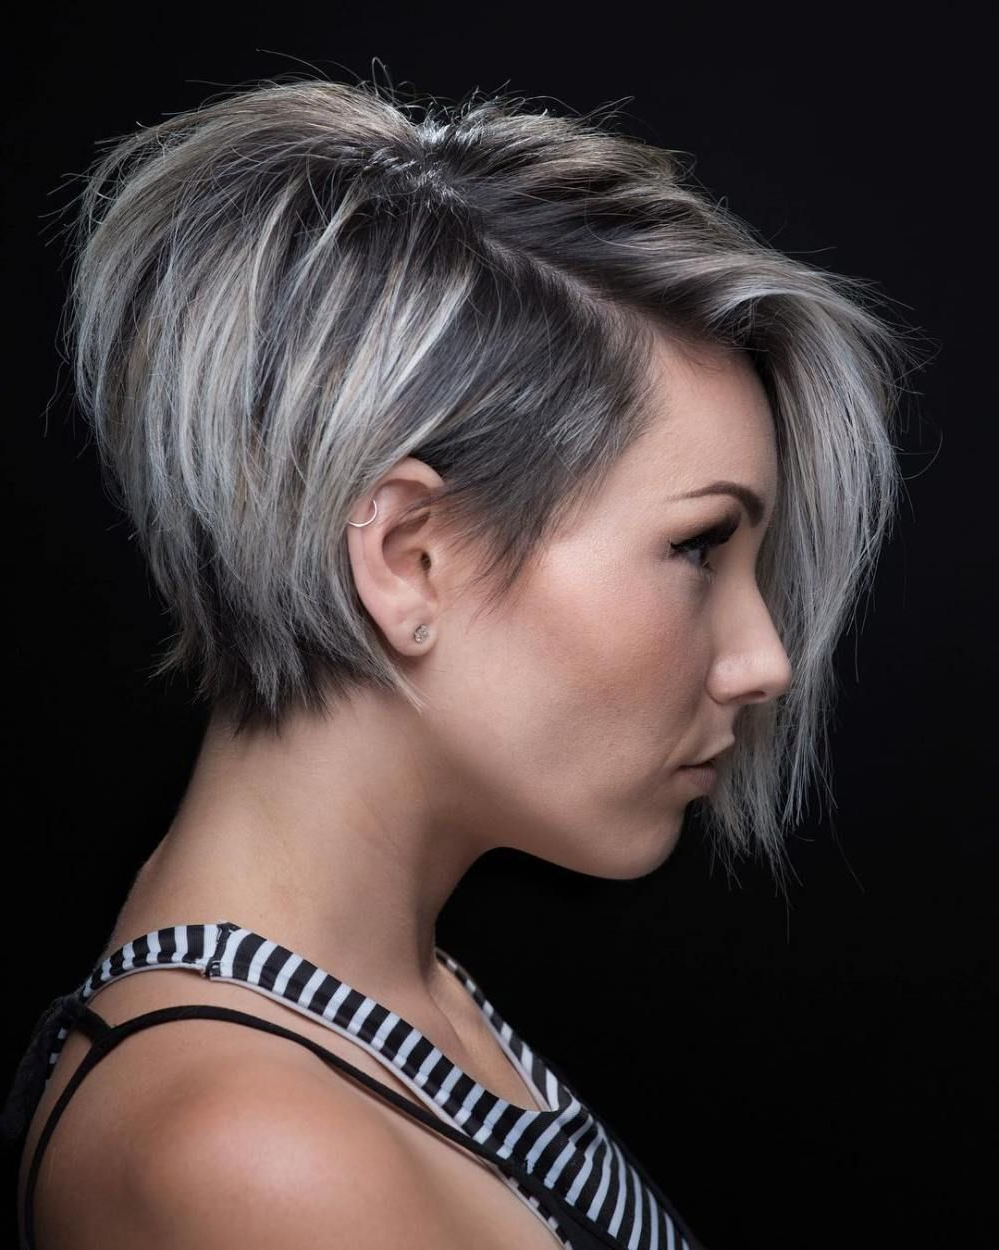 100 Mind Blowing Short Hairstyles For Fine Hair | Pixie Bob, Long For Highlighted Pixie Bob Hairstyles With Long Bangs (View 15 of 20)